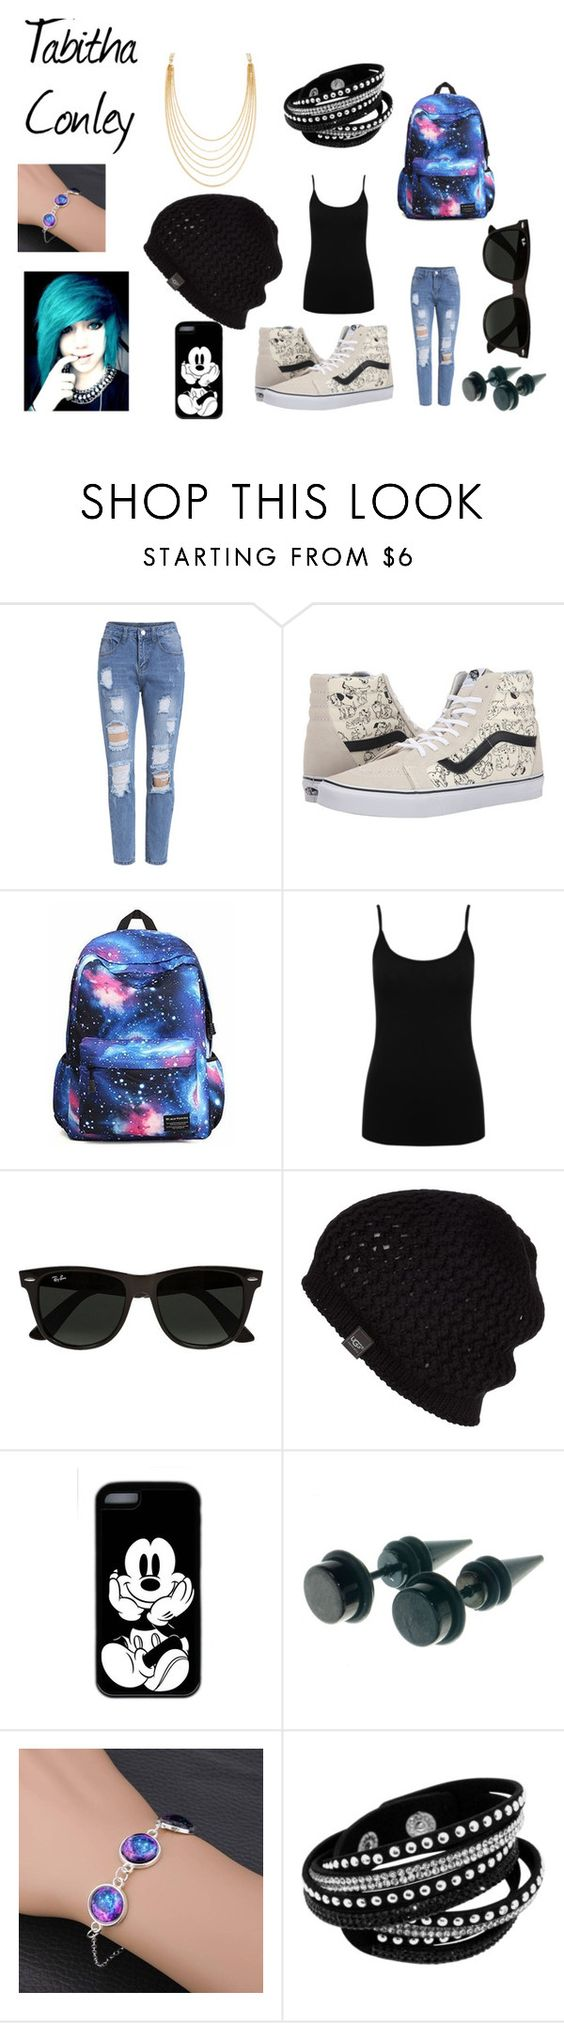 tabitha conely by brianna bryant liked on polyvore featuring tabitha conely by brianna bryant 10084 liked on polyvore featuring vans m co